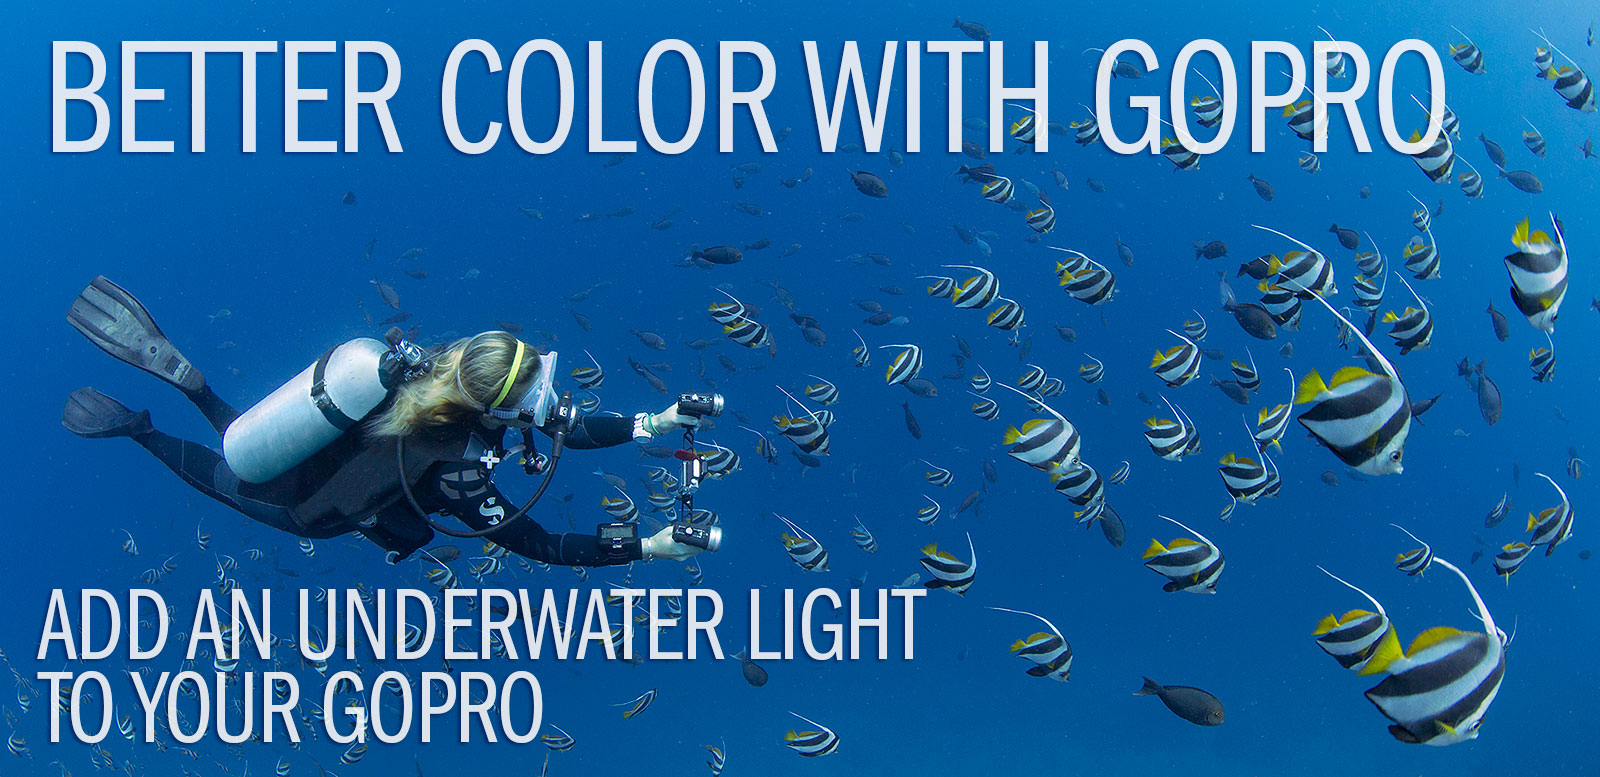 Want color? Add an underwater light to your GoPro!